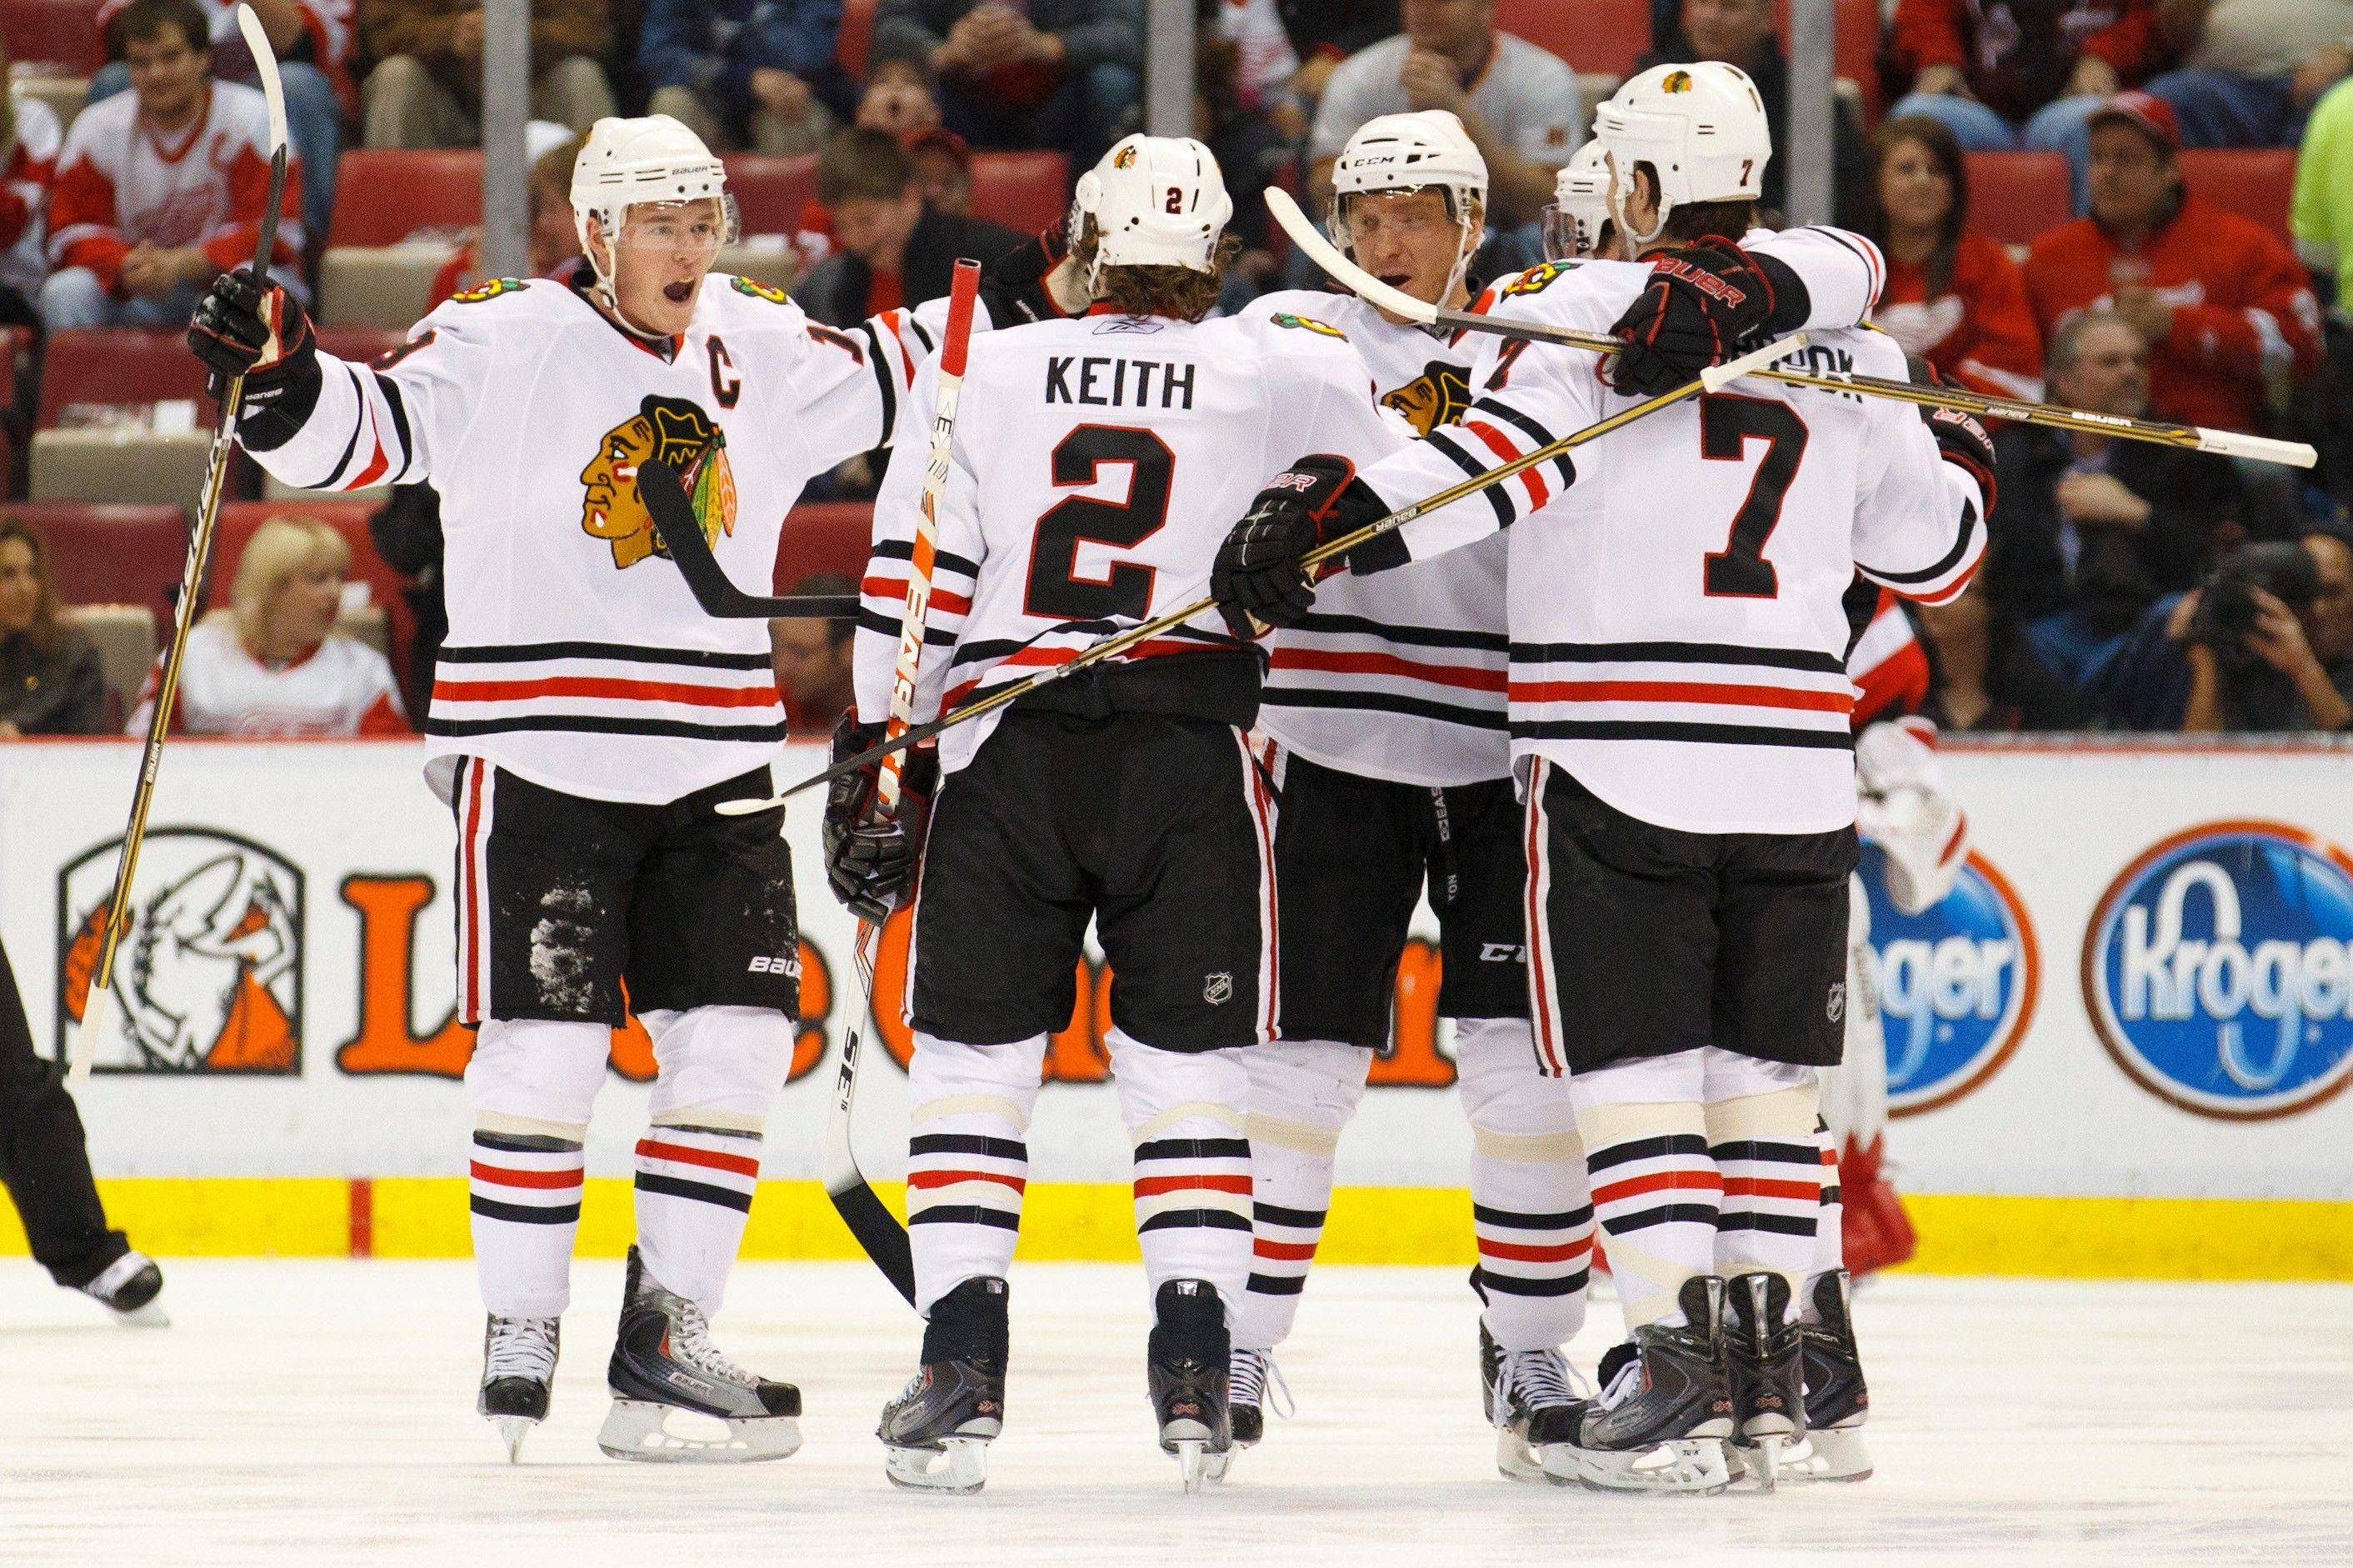 The Blackhawks celebrate a goal by defenseman Brent Seabrook (7) just 27 seconds into Friday night's victory at Detroit.